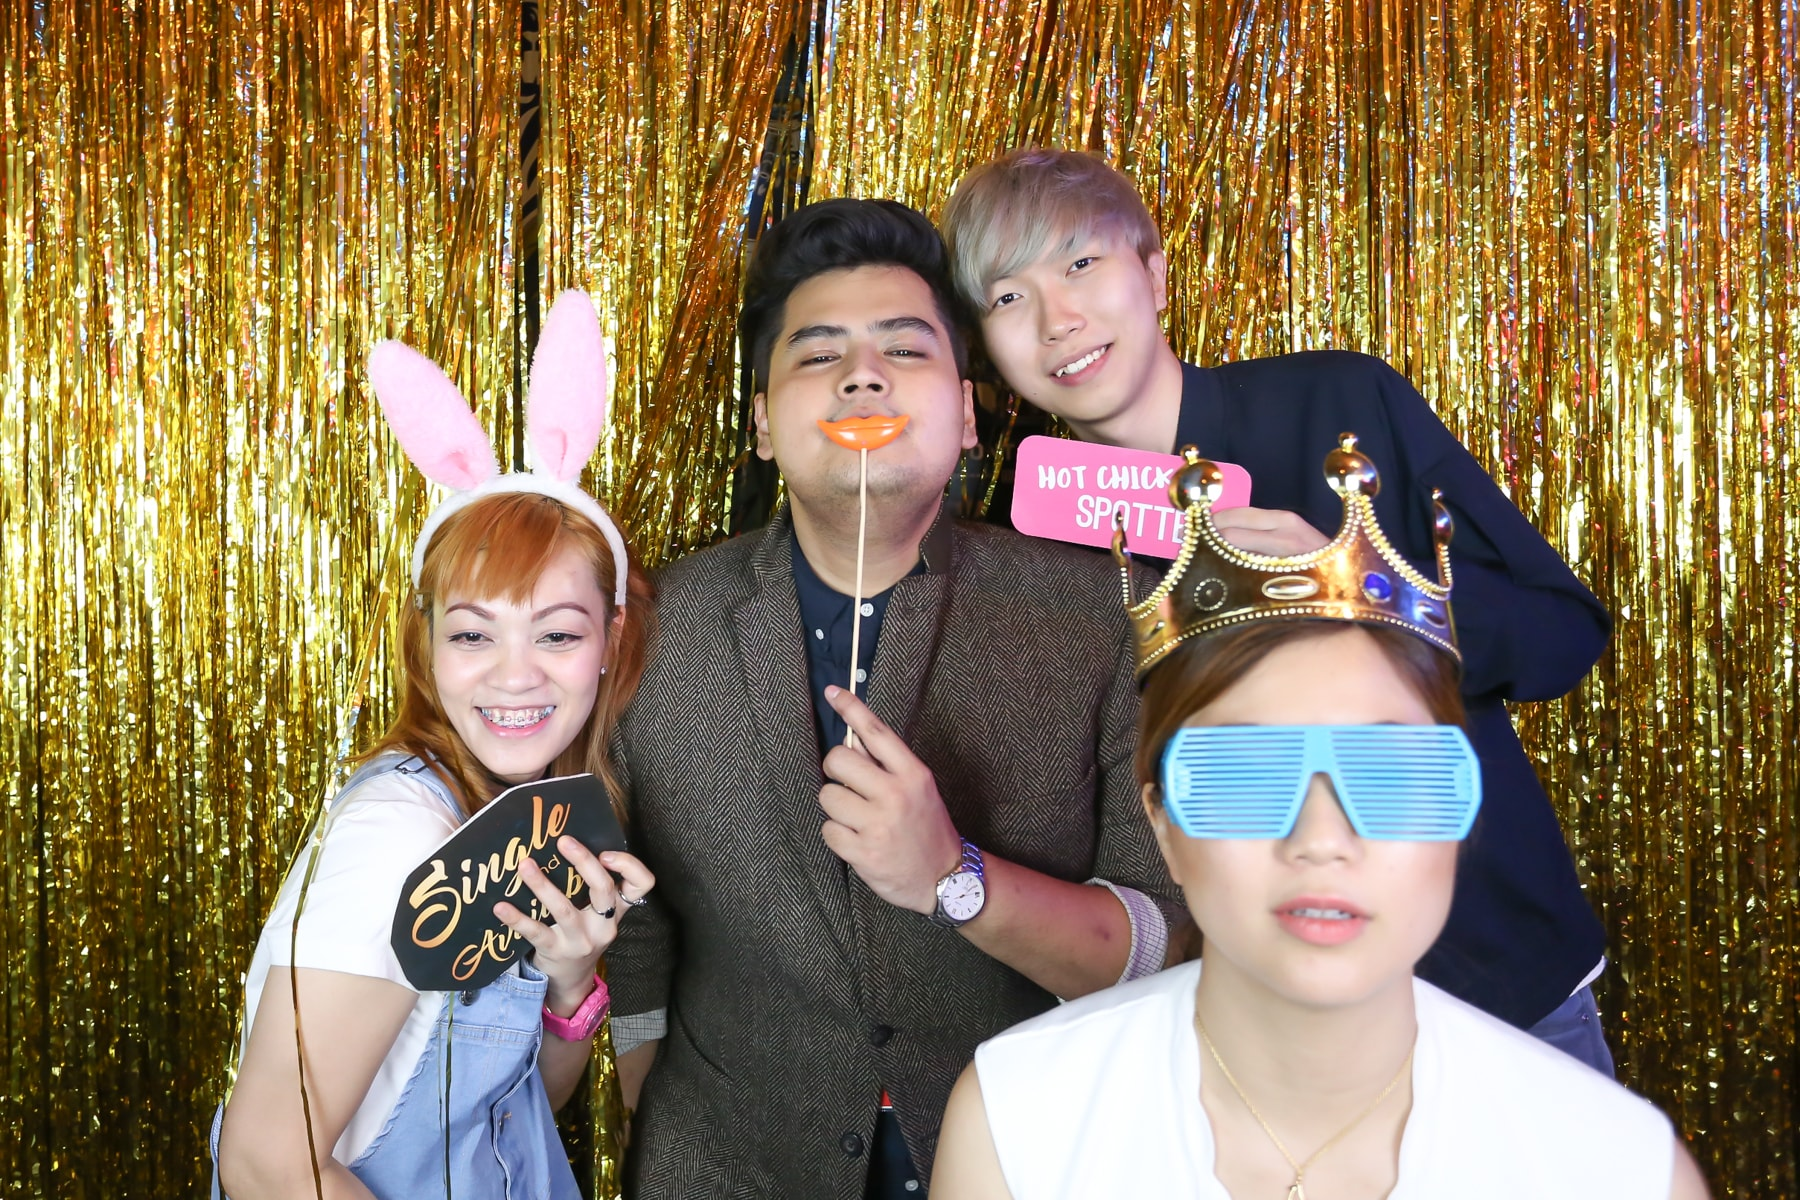 Sushivid+crunch+tagbooth+16